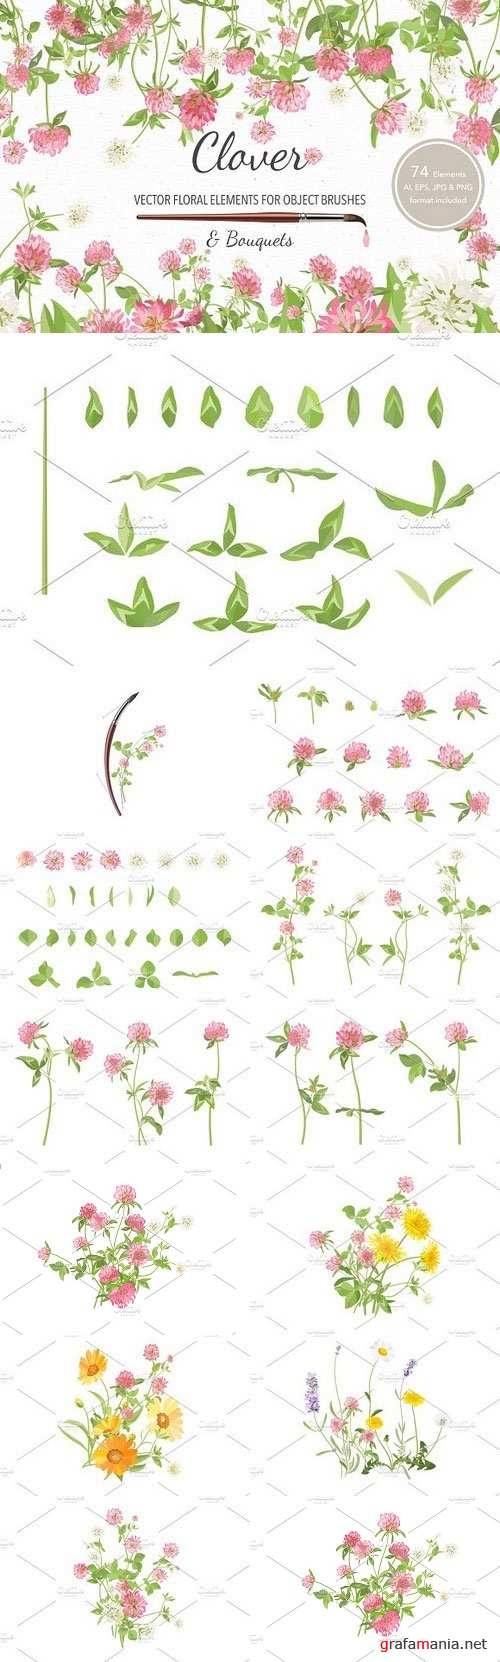 Vector object brushes. Clover - 1213174